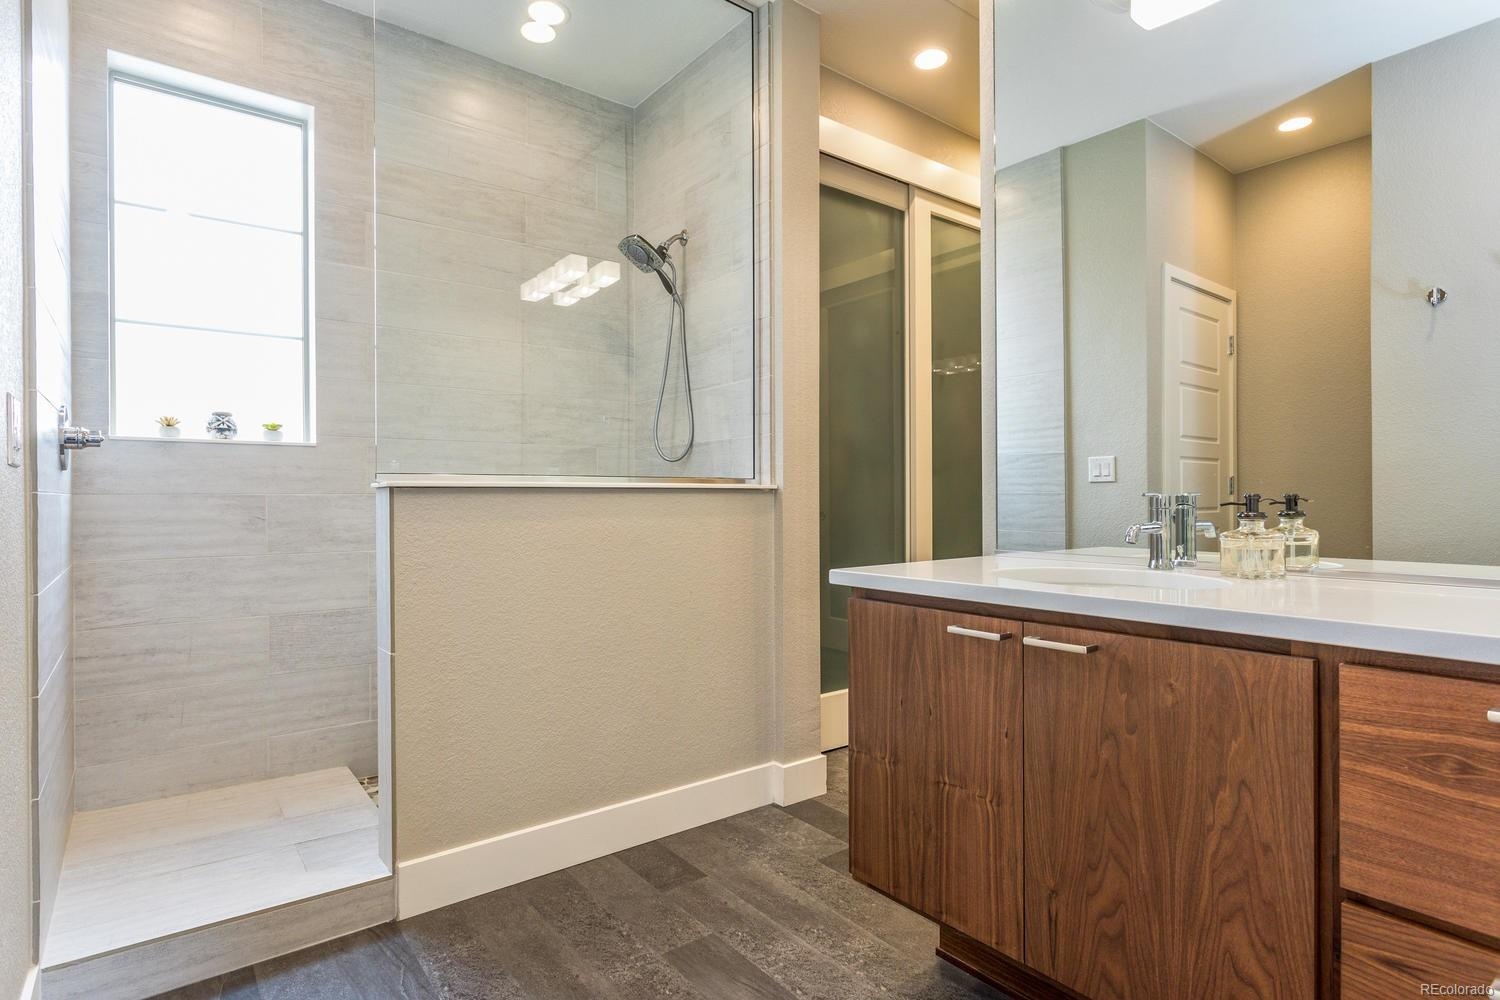 Walnut Soft Pull Cabinets and Double Sinks with Quartz Countertops!